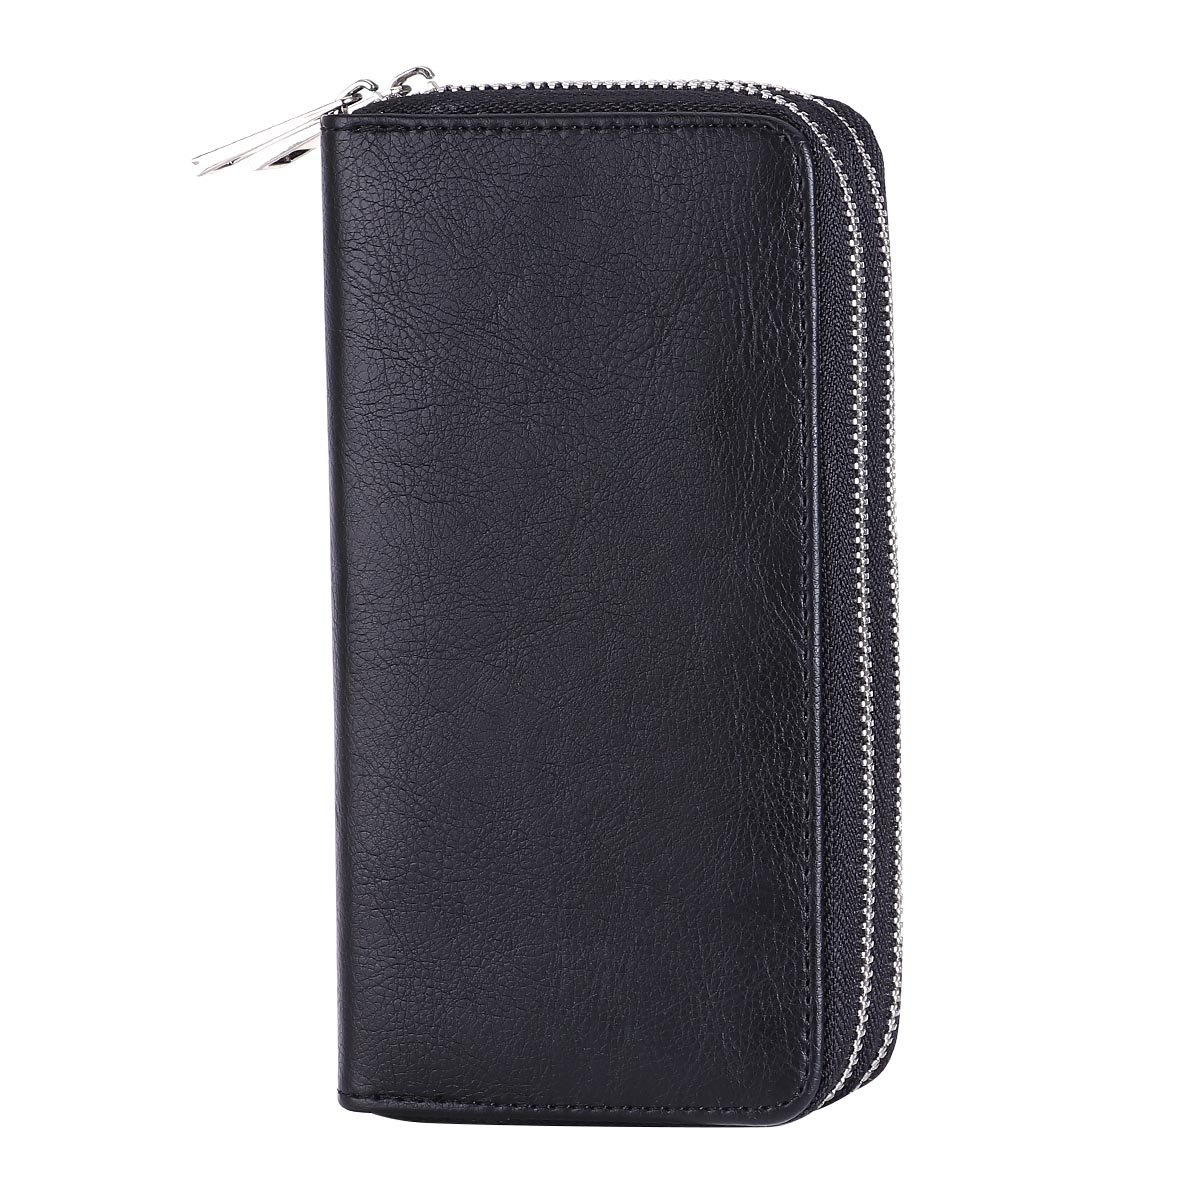 HAWEE Big Size Long Wallet for Woman Dual Zippered Clutch Purse Premium PU 5 Credit Card Slot 1 Smart Phone Slot 1 Coin Purse and Ample Compartments for Cash and Note, Black